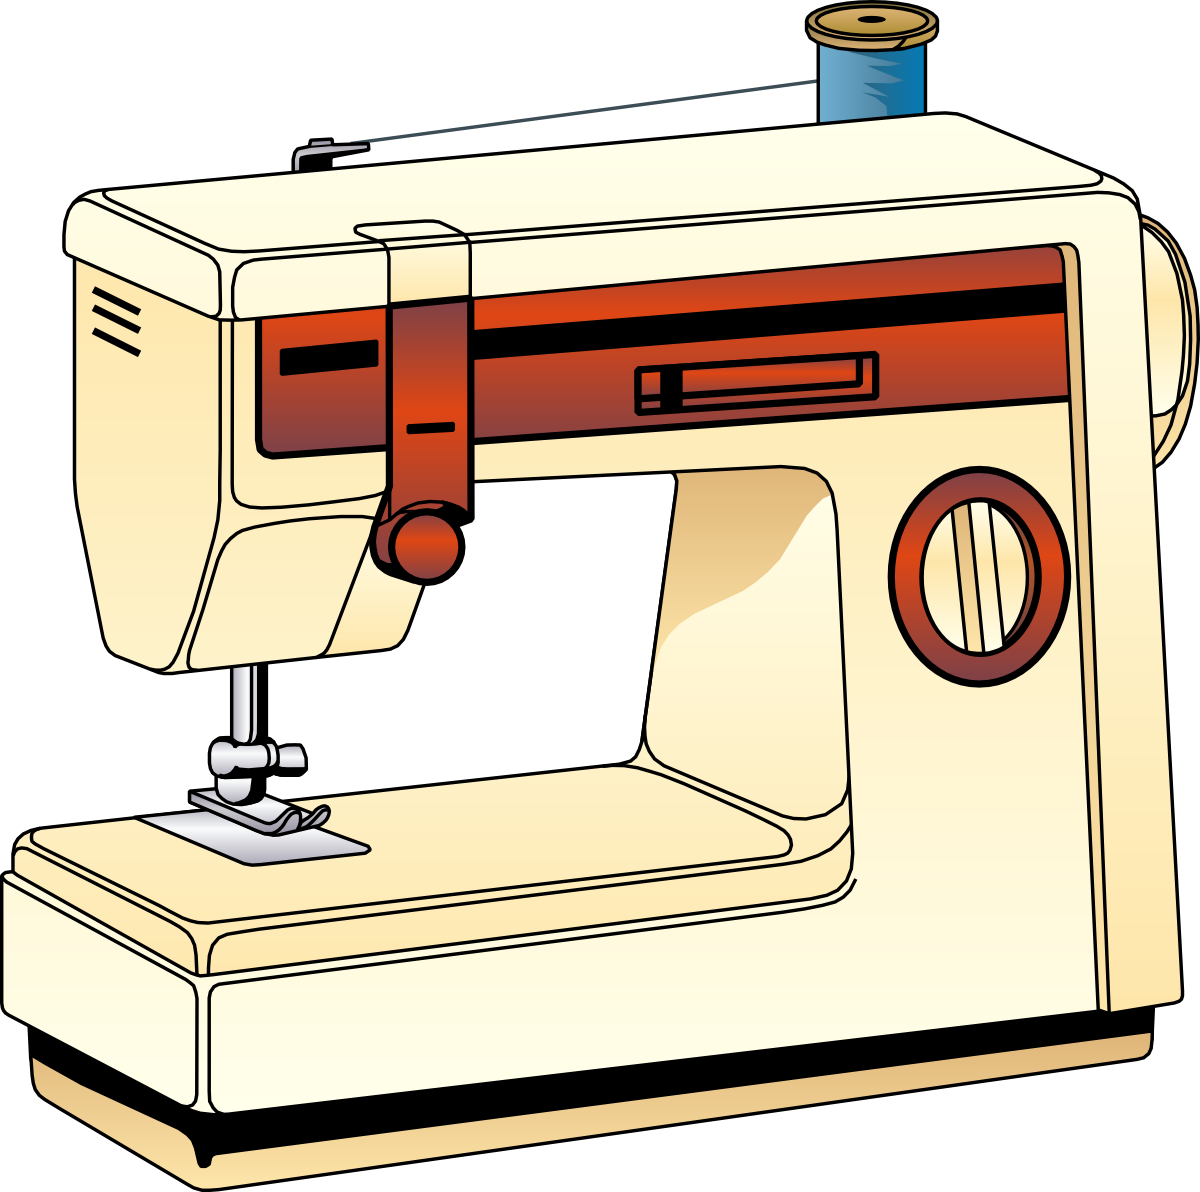 Machine clipart Images Free Machine Clipart Sewing